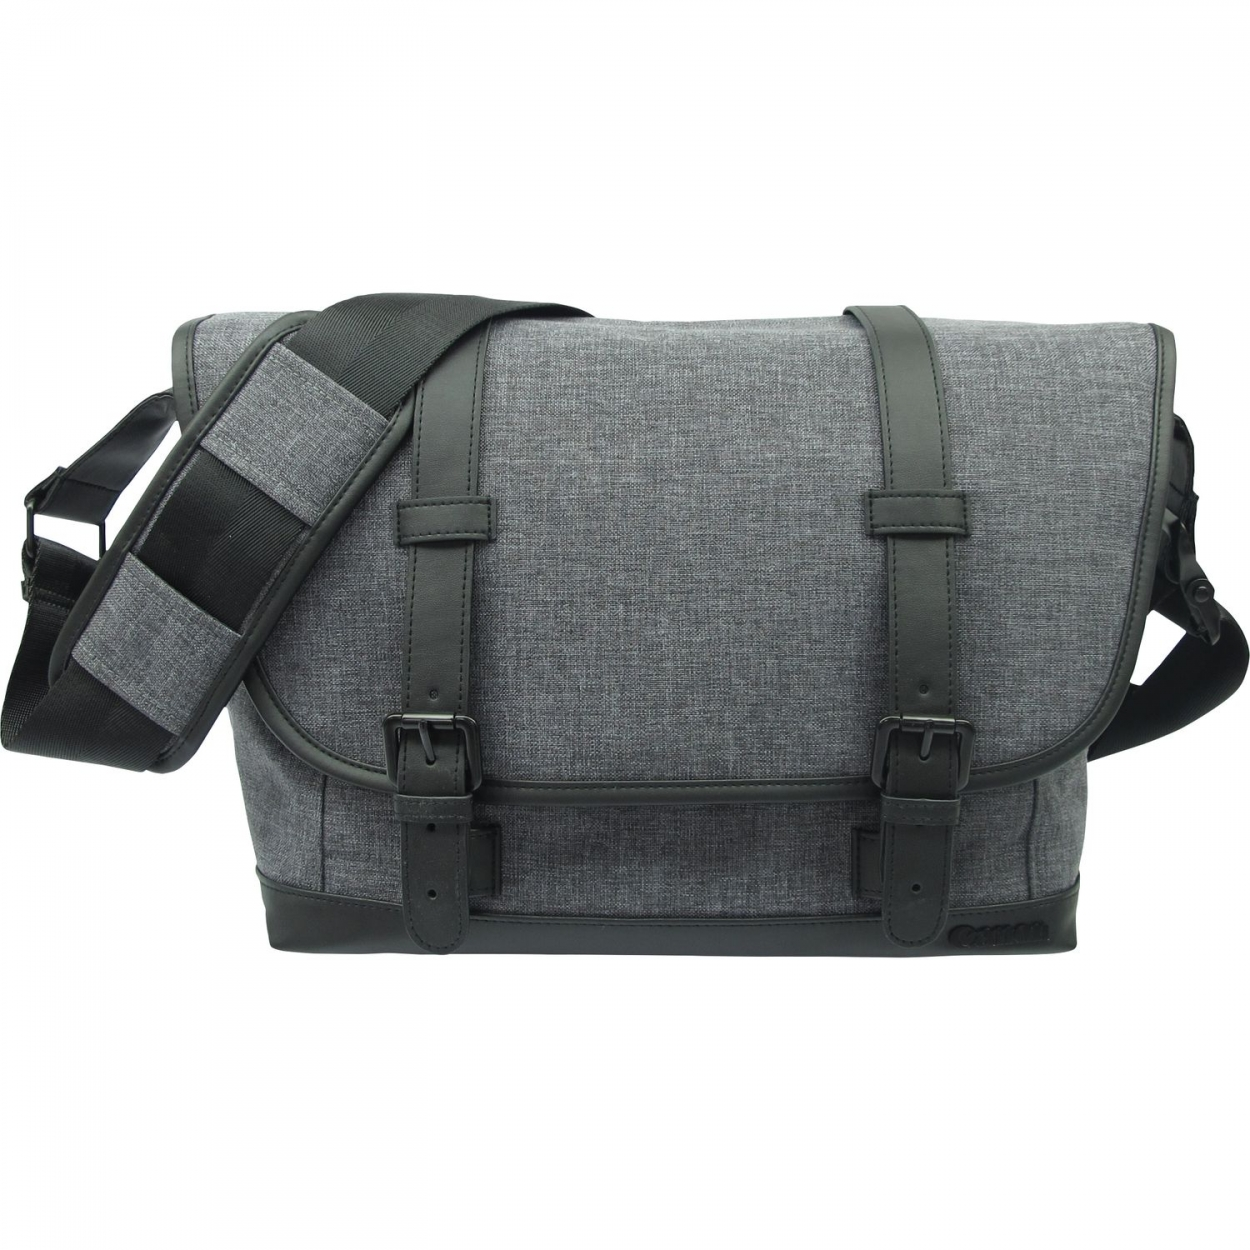 1356c001_ms10-messenger-bag_1